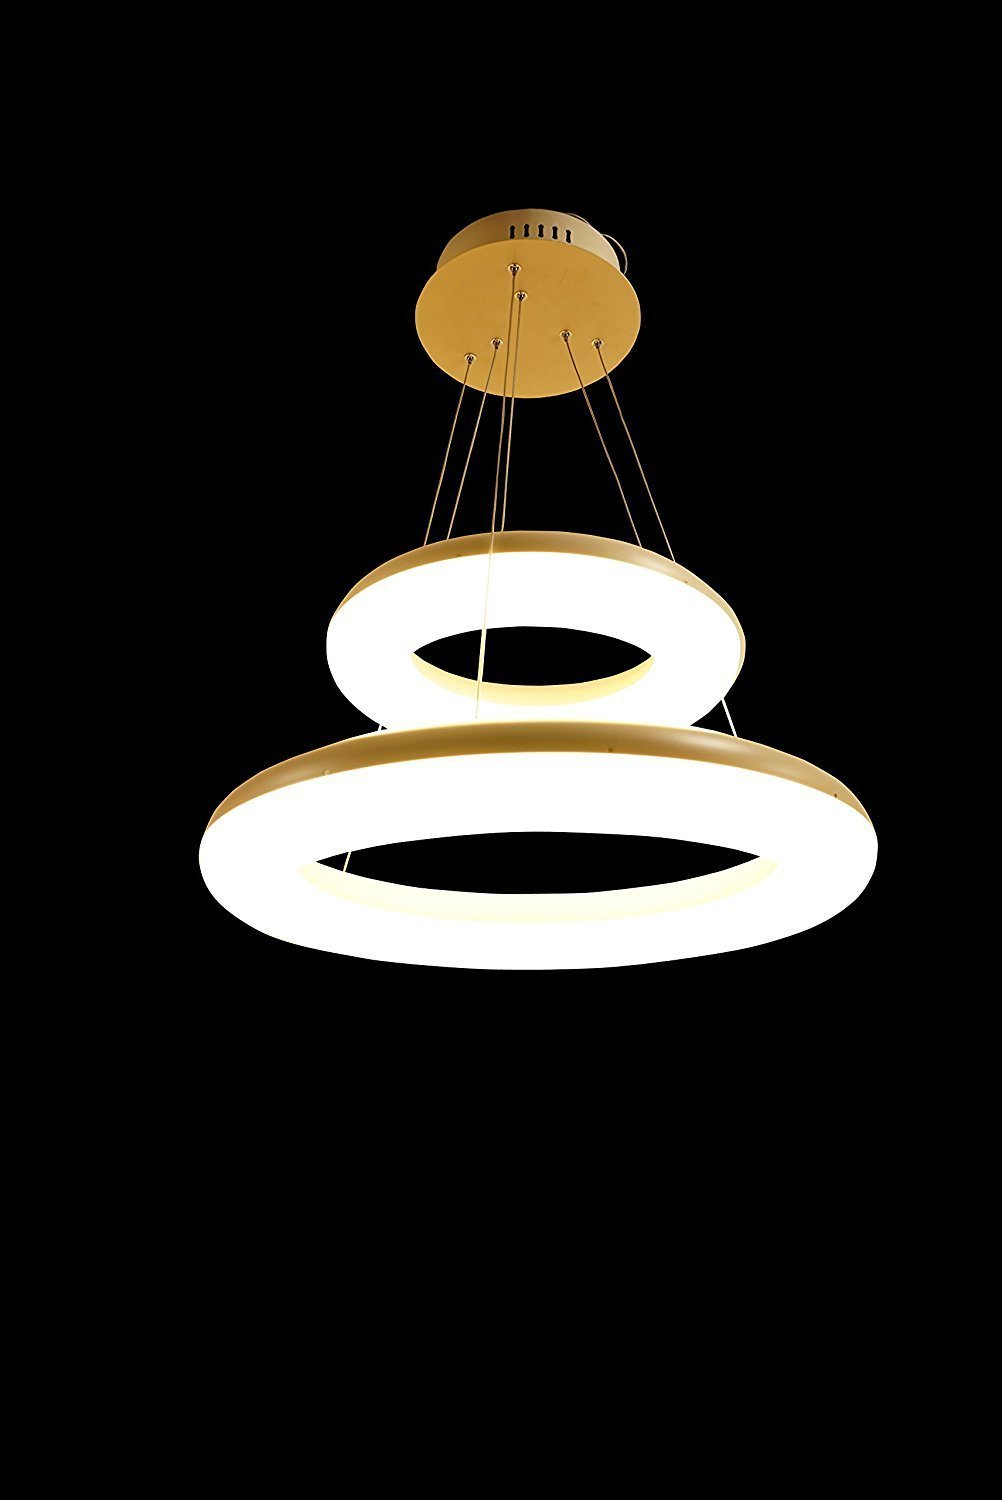 Upgrade LED Ceiling Light Fixture Double Round Circle ( Out Ring 24 inch + Inner Ring 16 inch ) (24 inch & 16 inch) by Modin Home Inc